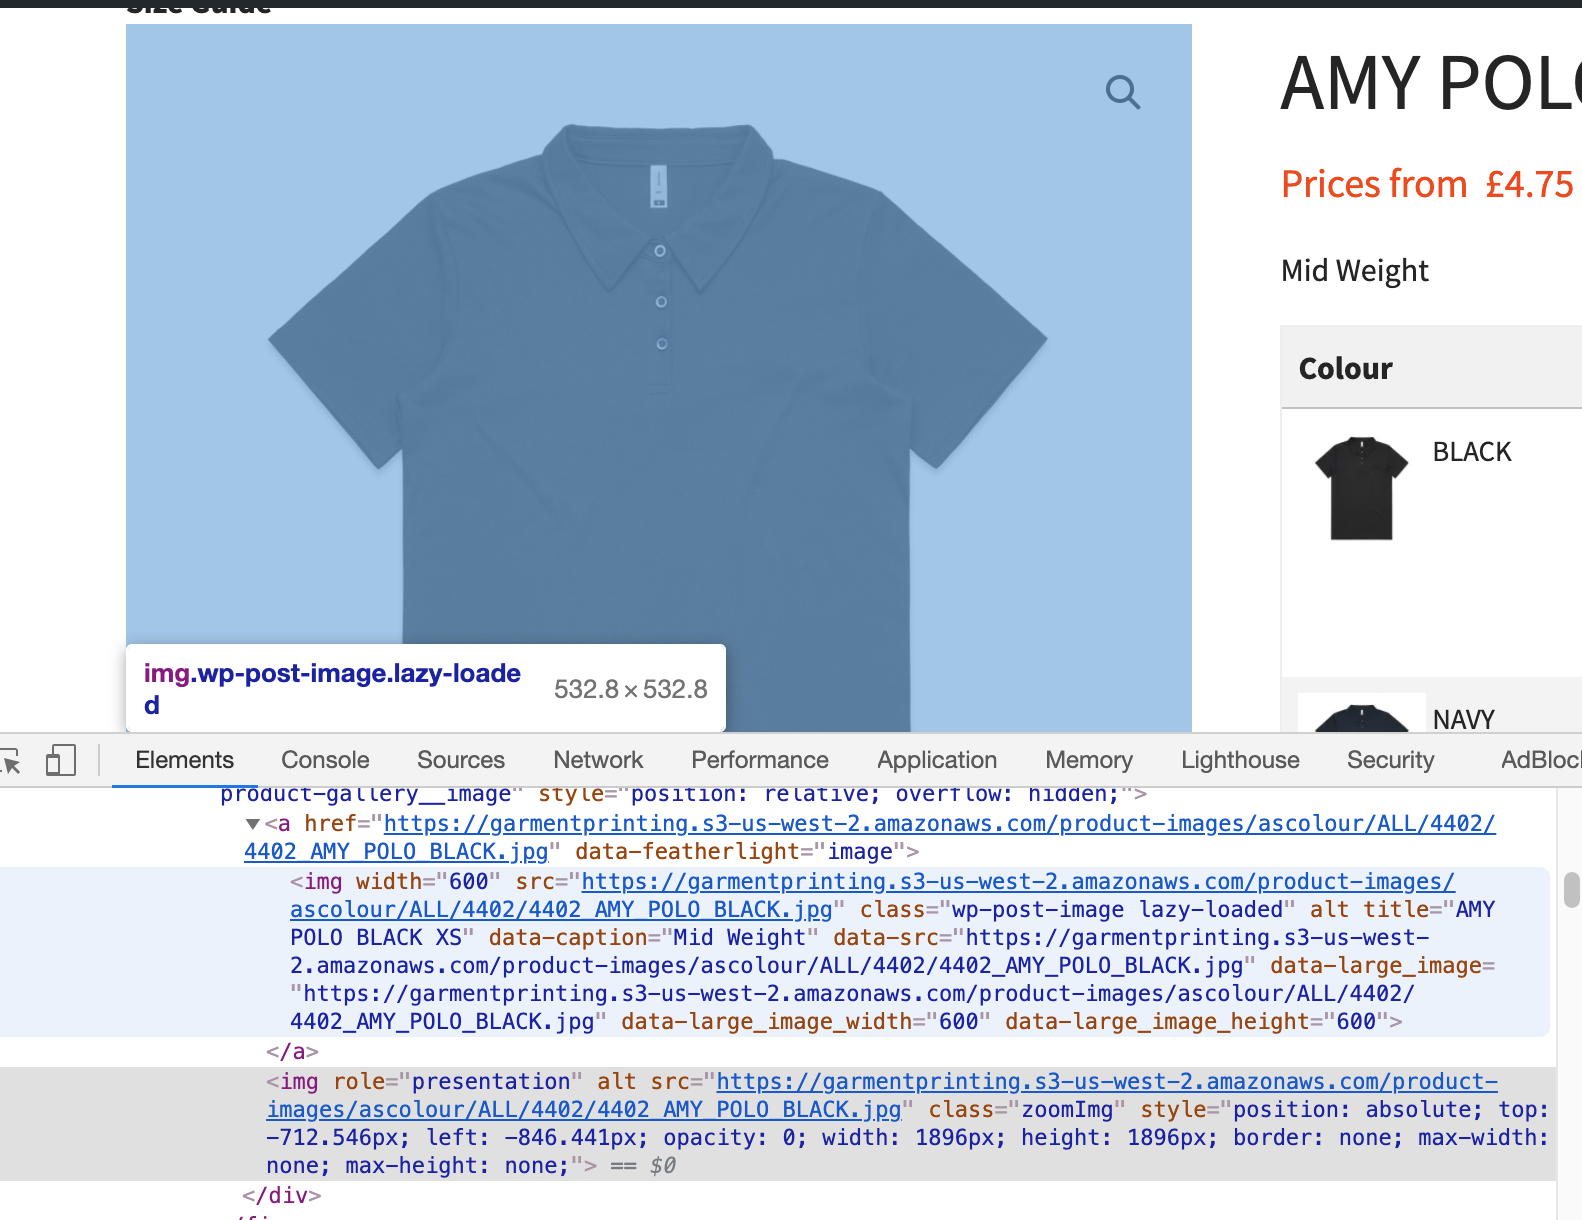 Main product image not getting served via jetpack CDN